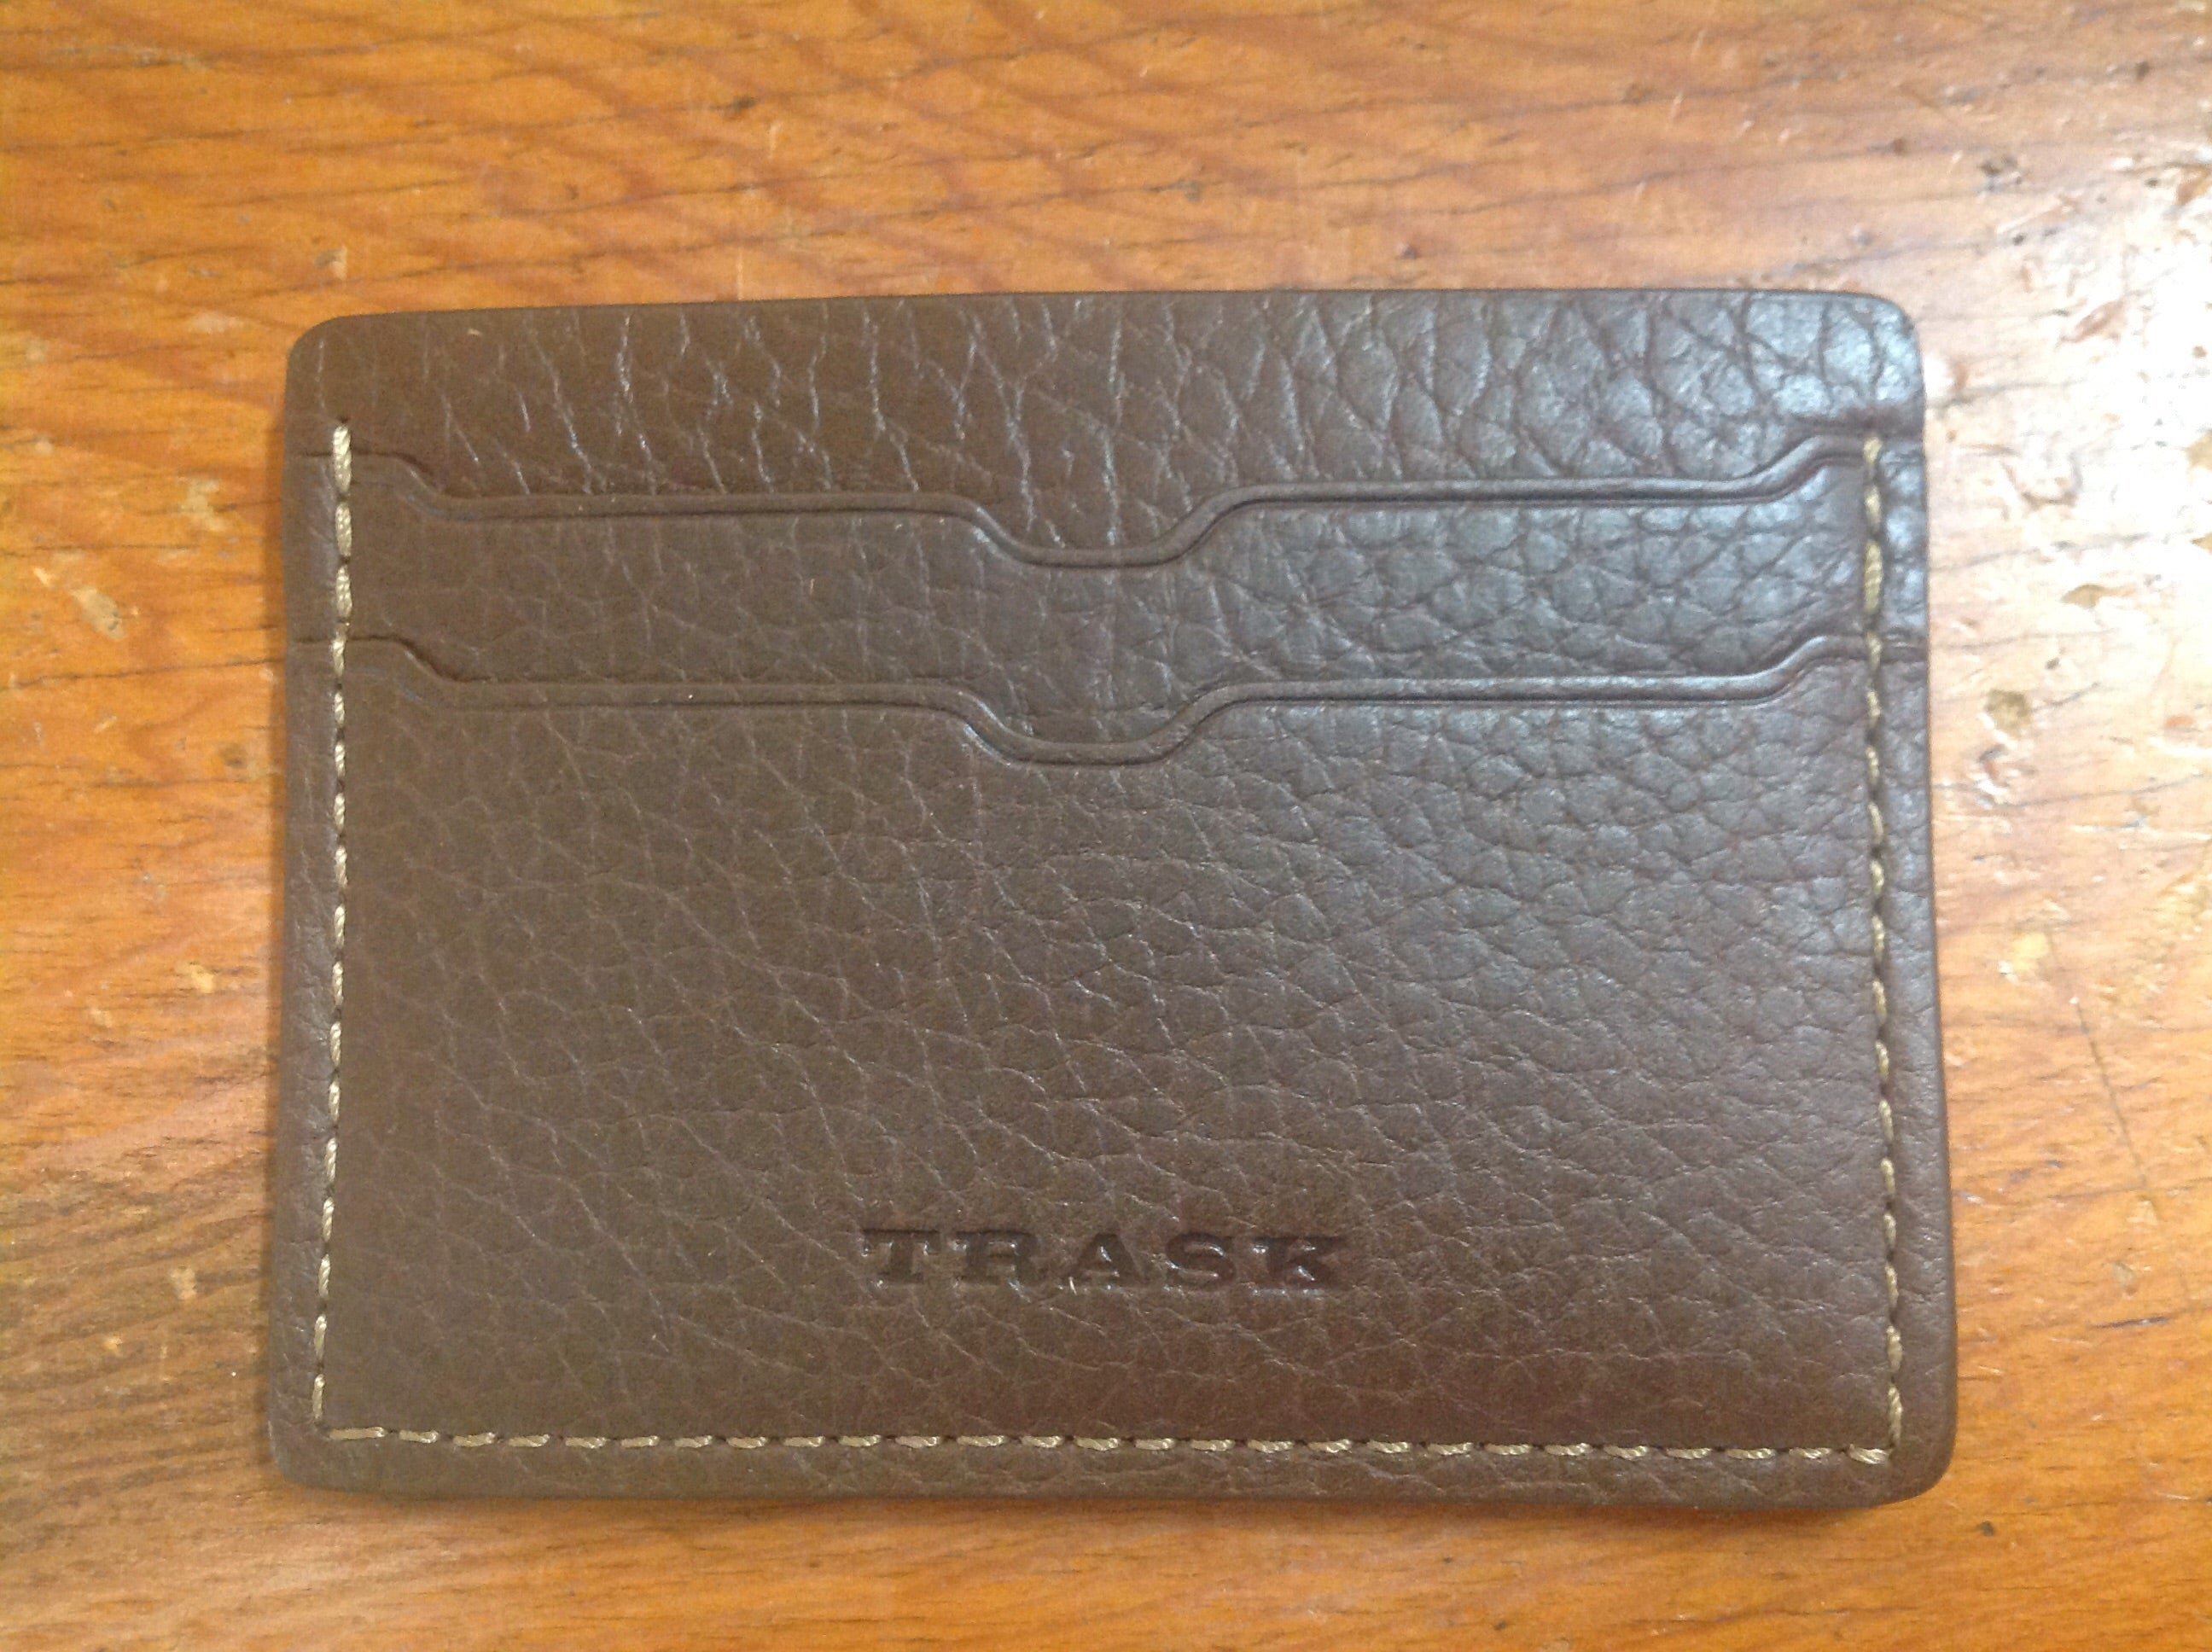 "Trask ""Weekender"" - credit card and license case"